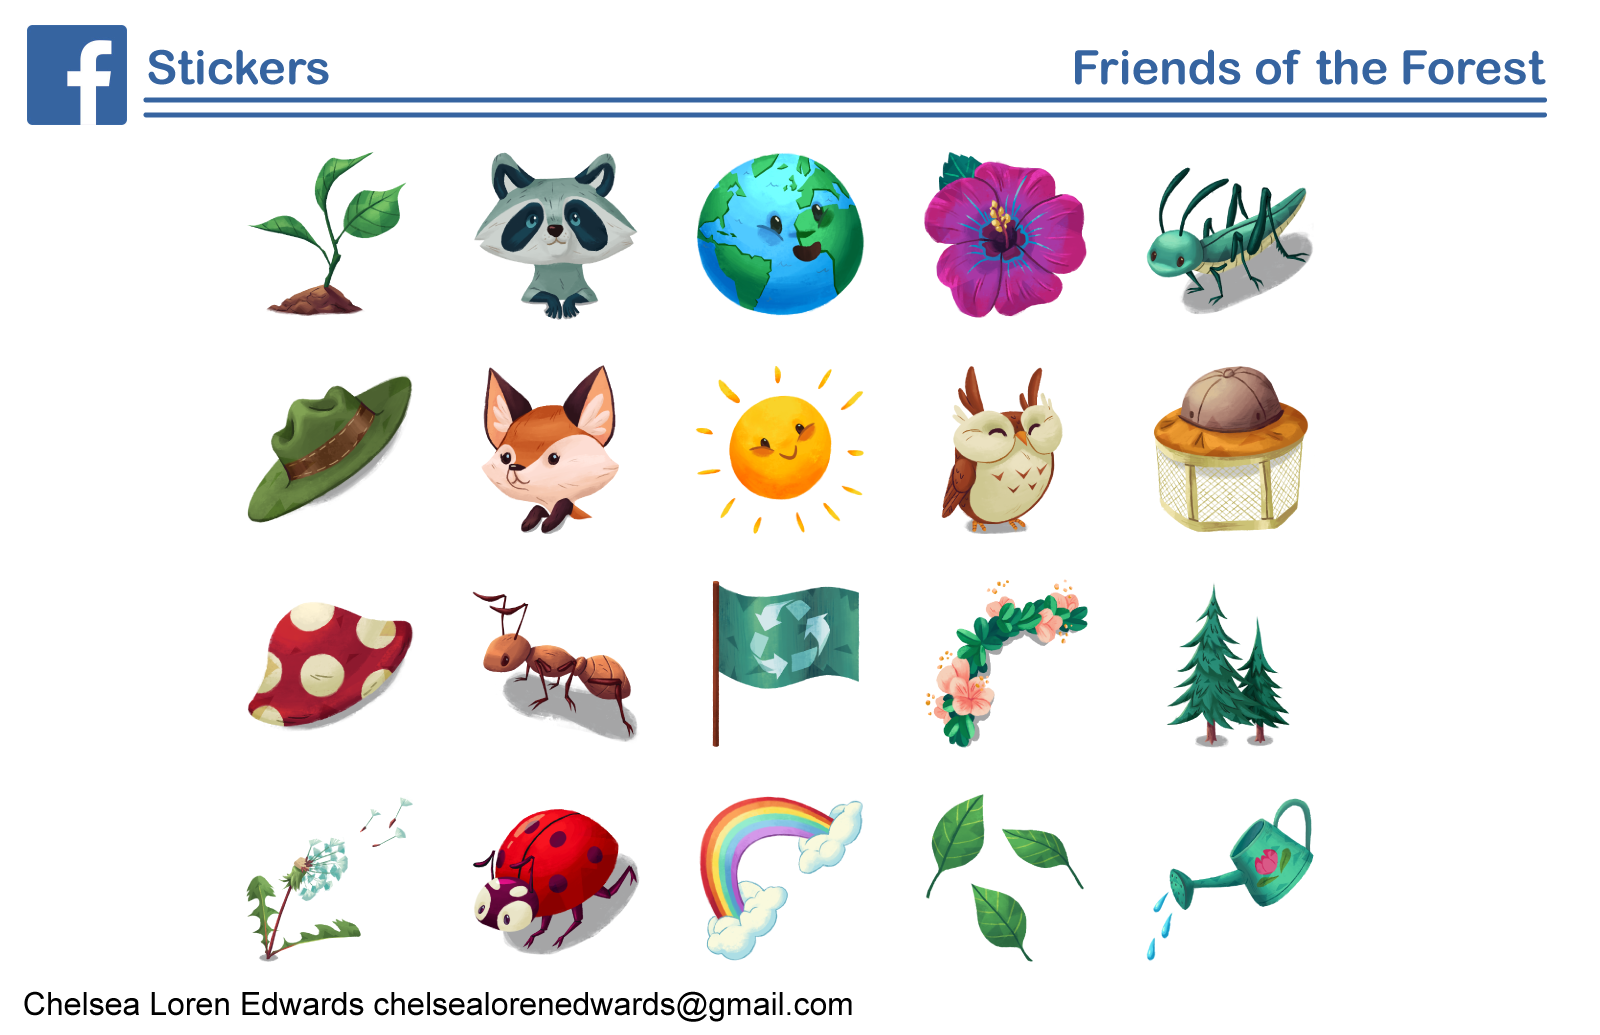 Friends of the Forest Sticker Pack